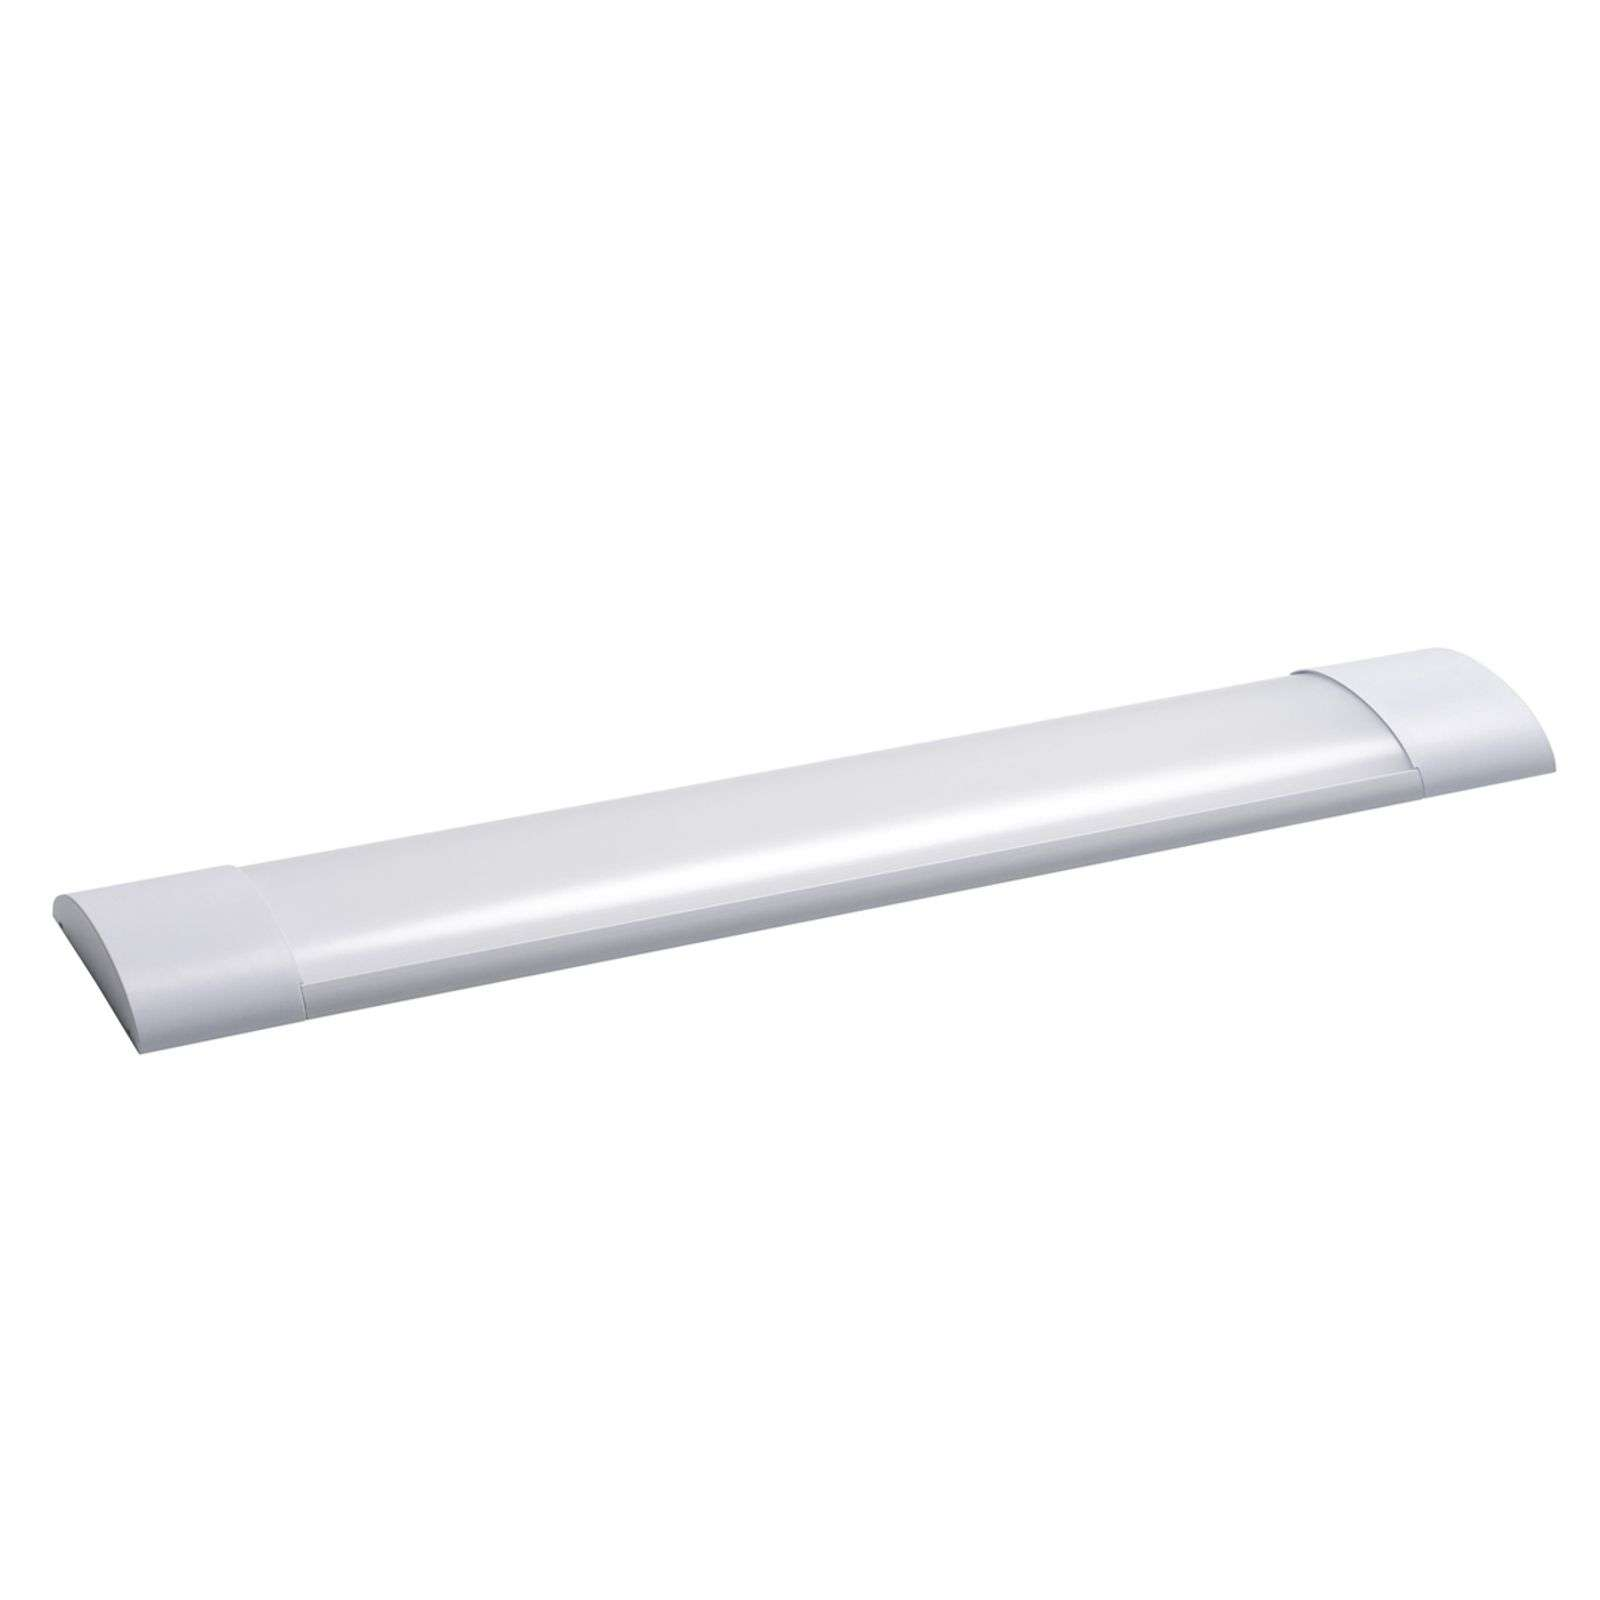 Plafonnier LED Office Dim Flat, longueur 121,3 cm